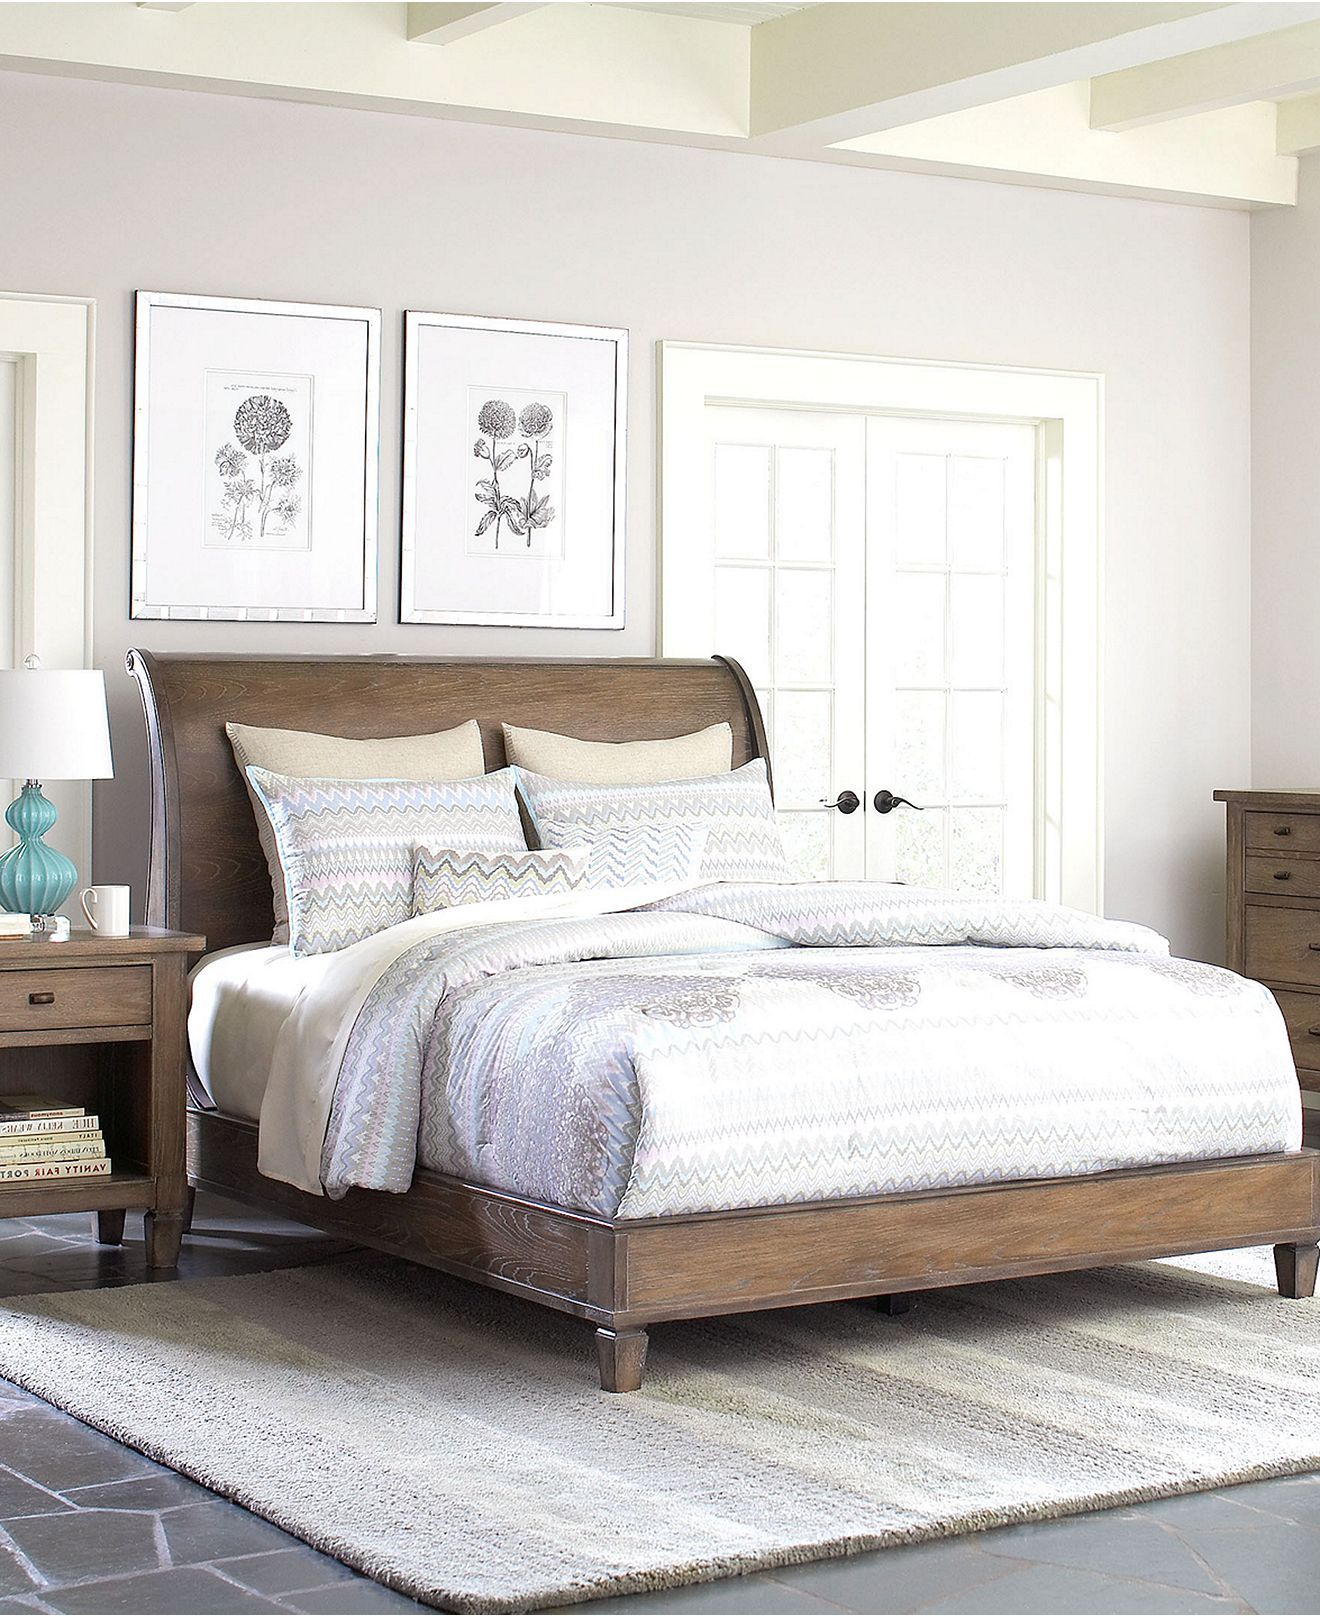 Super pretty room .Scottsdale Bedroom Furniture Collection - furniture - Macys #macysdreamfund